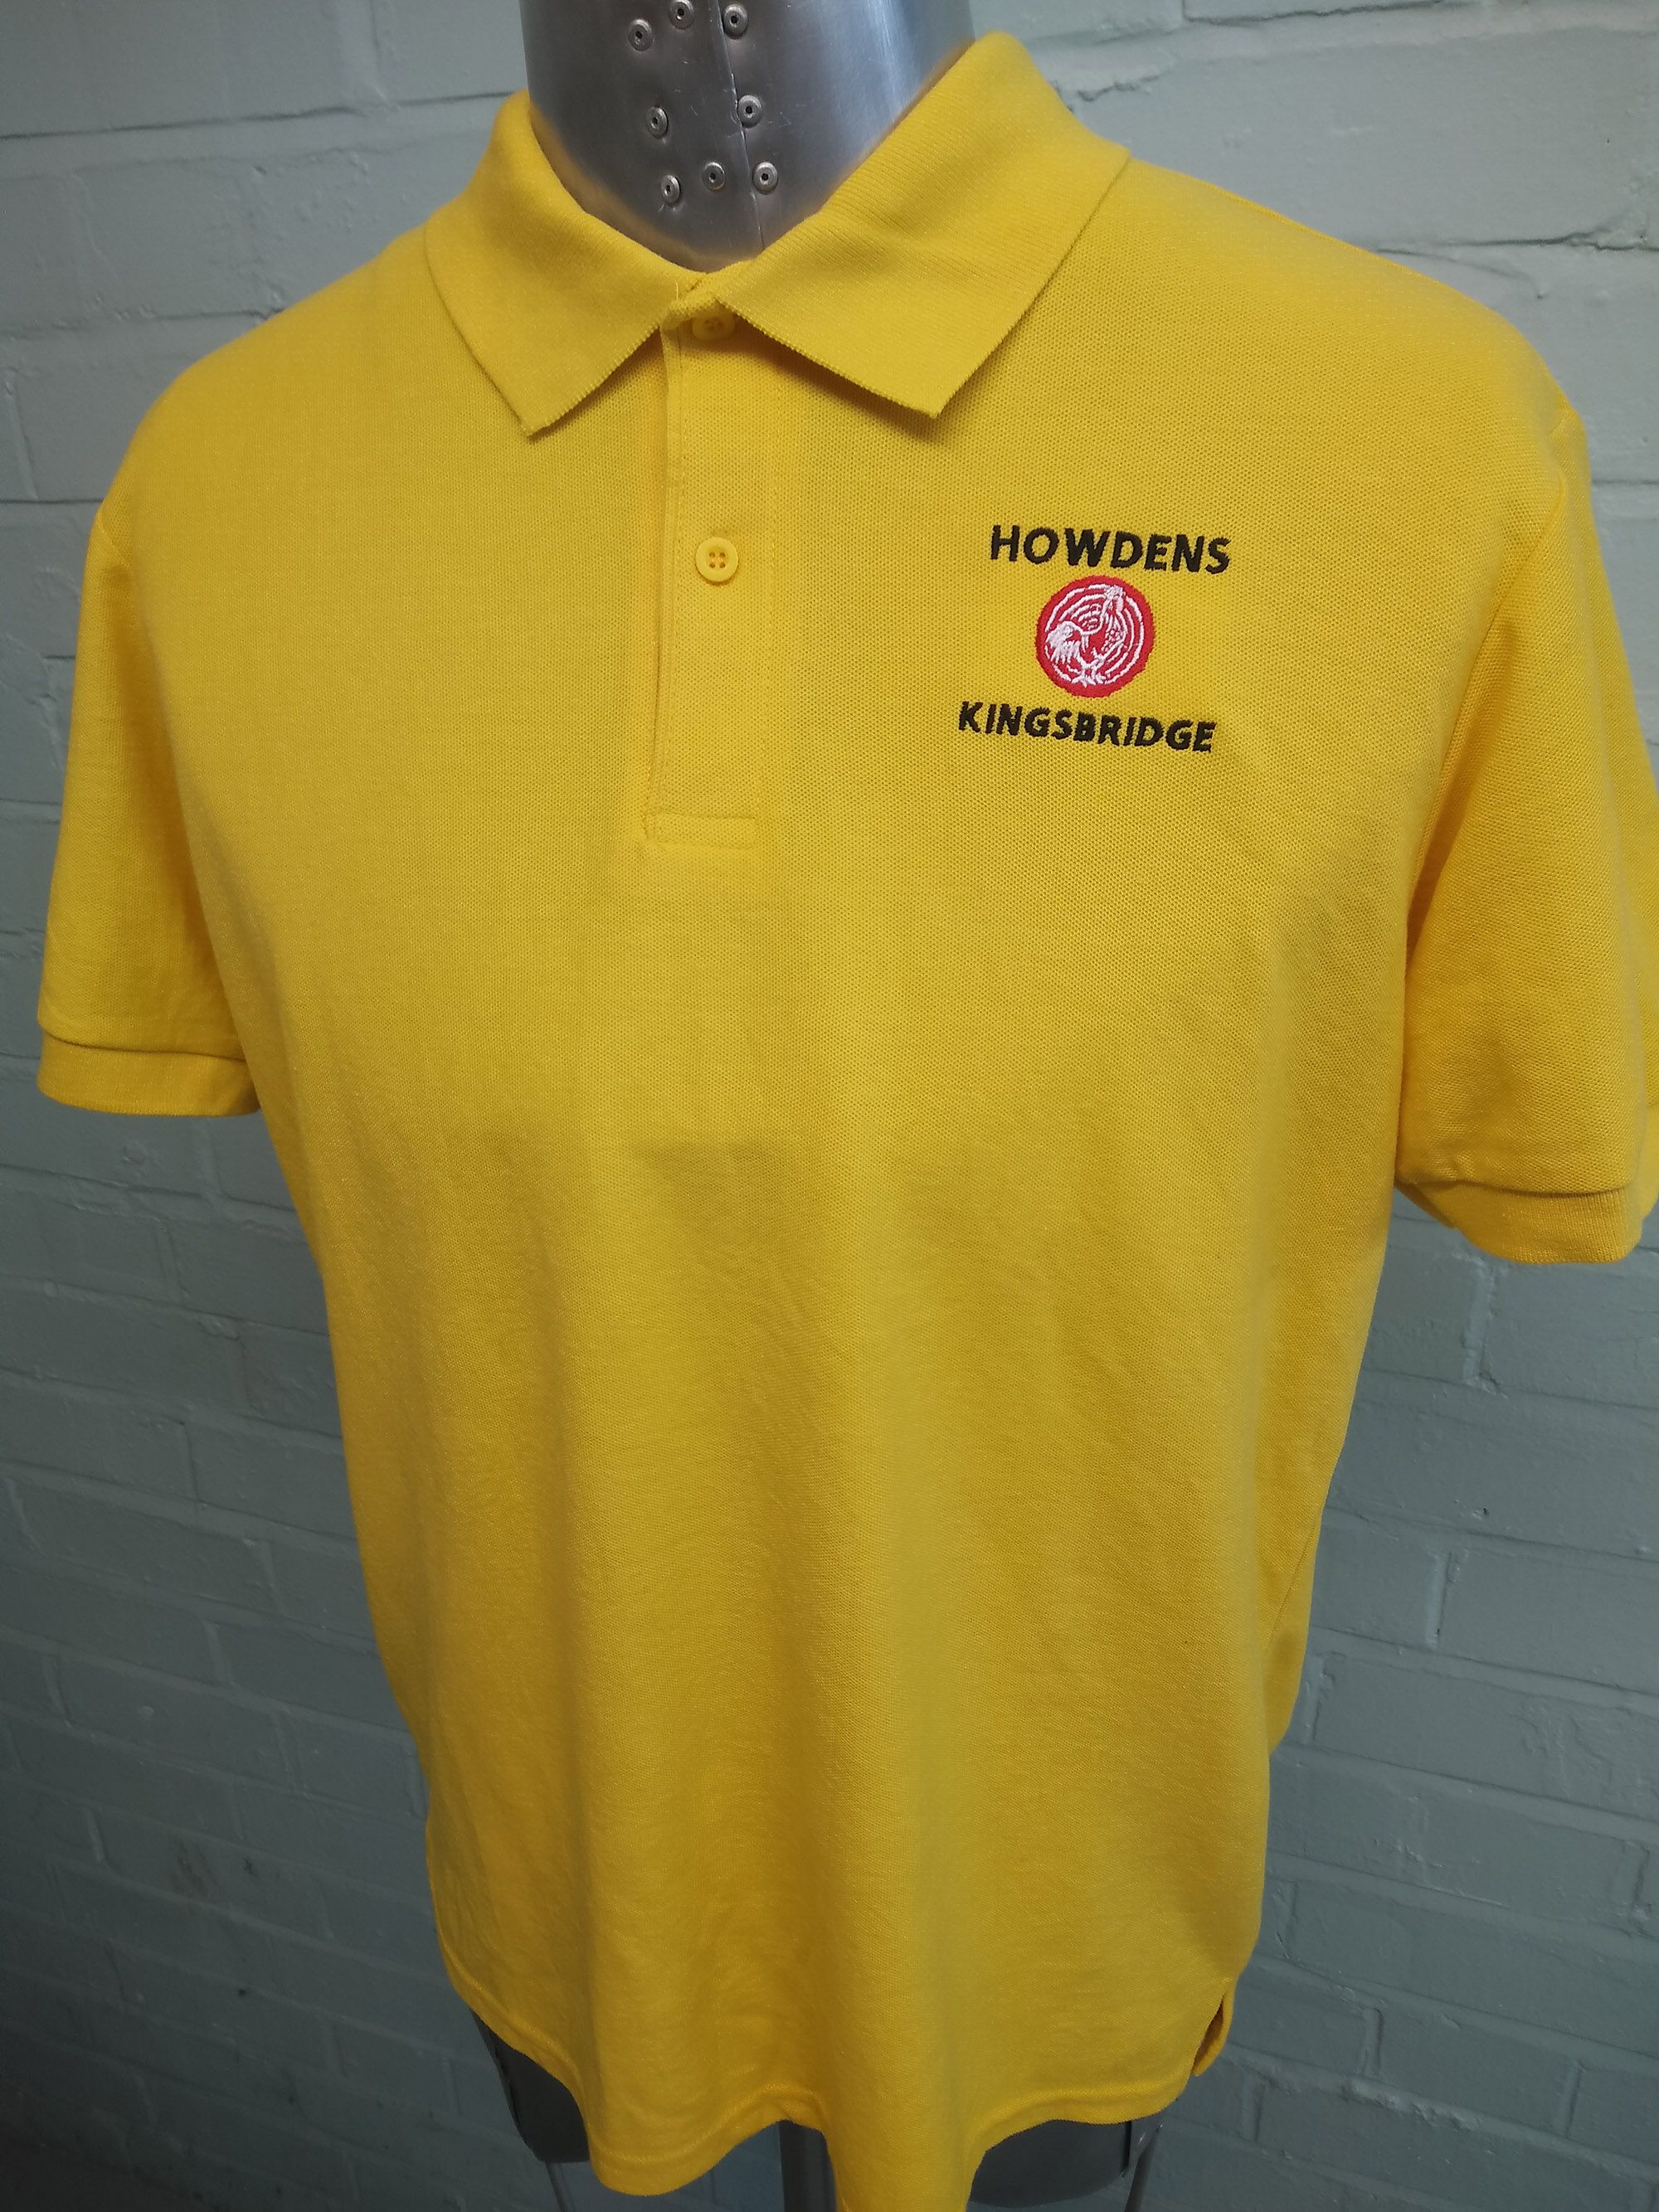 Corporate Printed Polo T Shirts Looking Great For The Guys And Girls